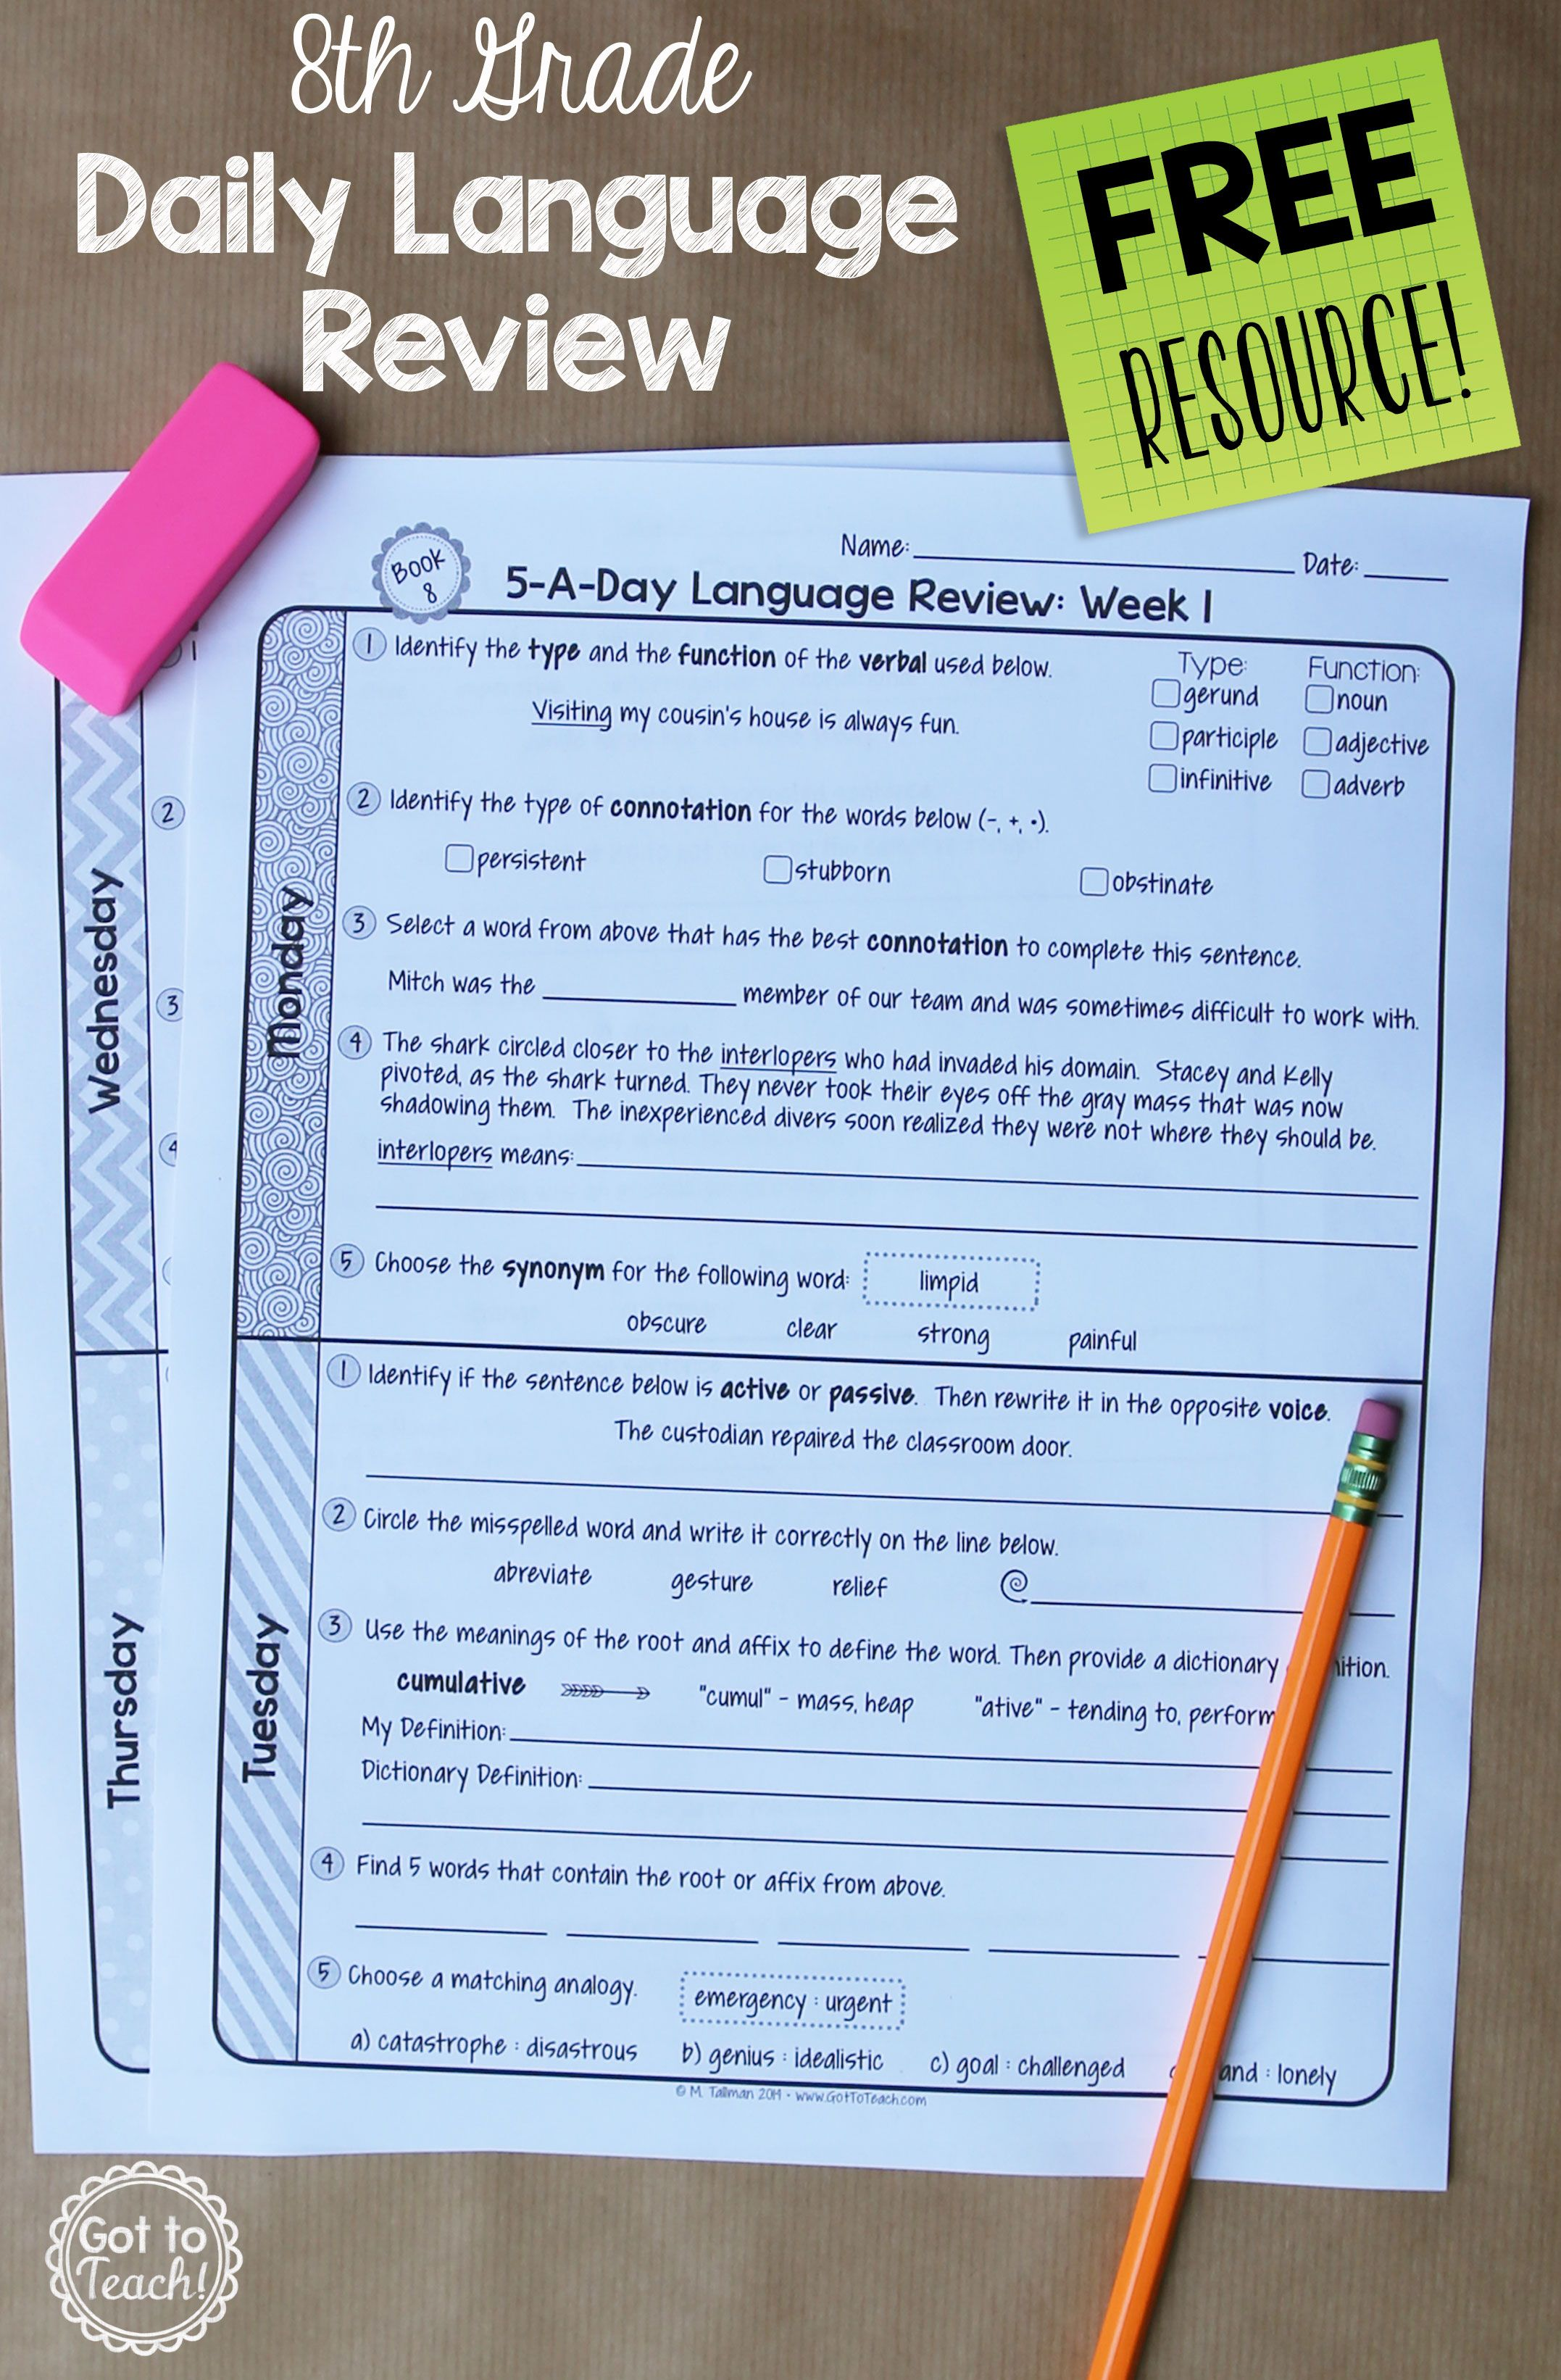 A Free Daily Language Review For 8th Grade Review Important Grammar And Vocabulary Skills Each